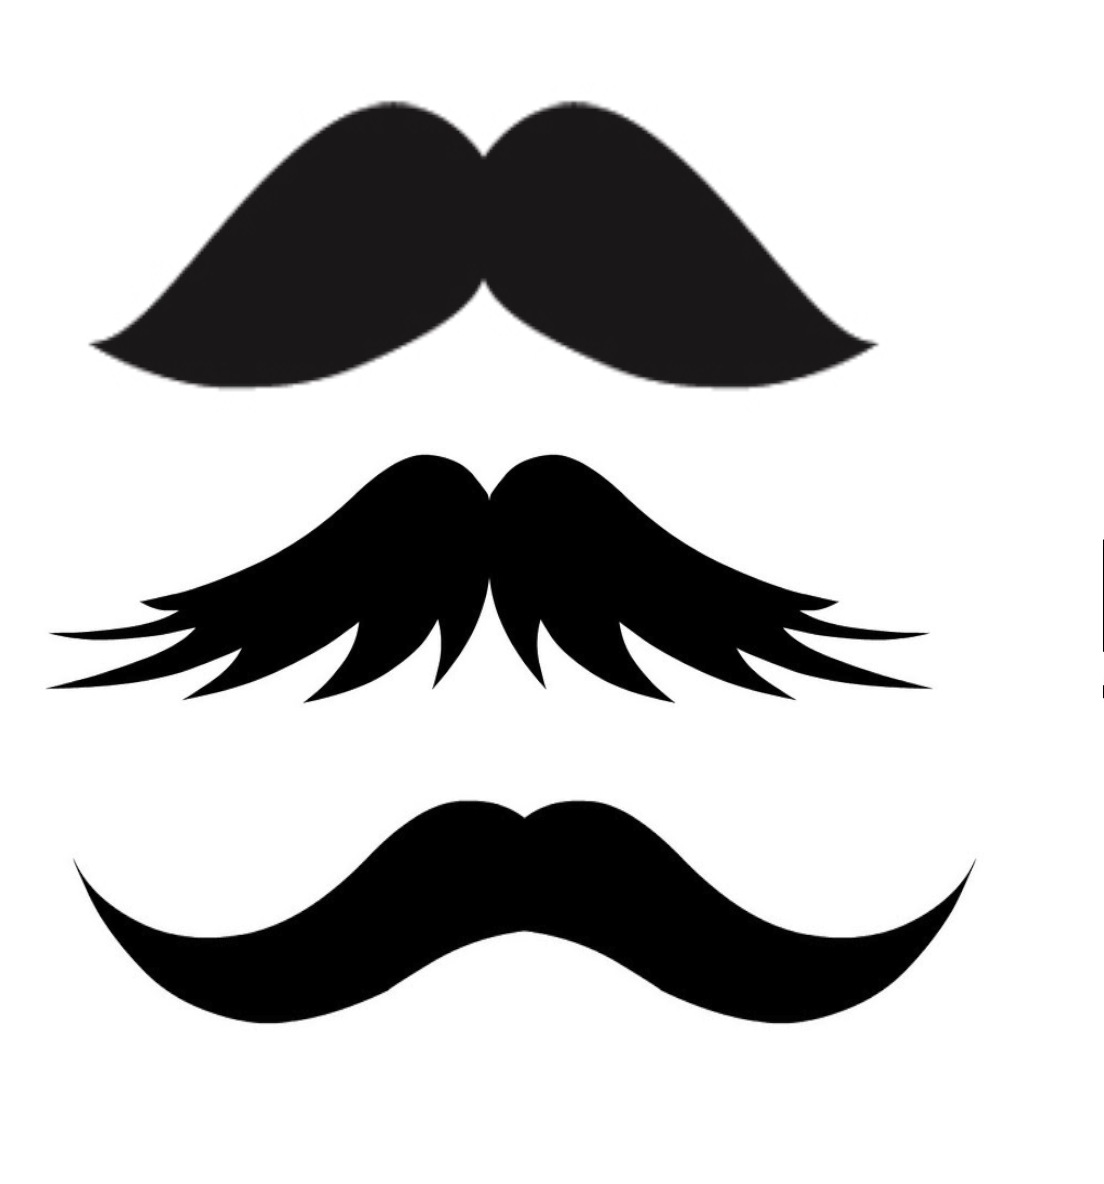 Ilysillyface diy mustache tutorials for Mustach template